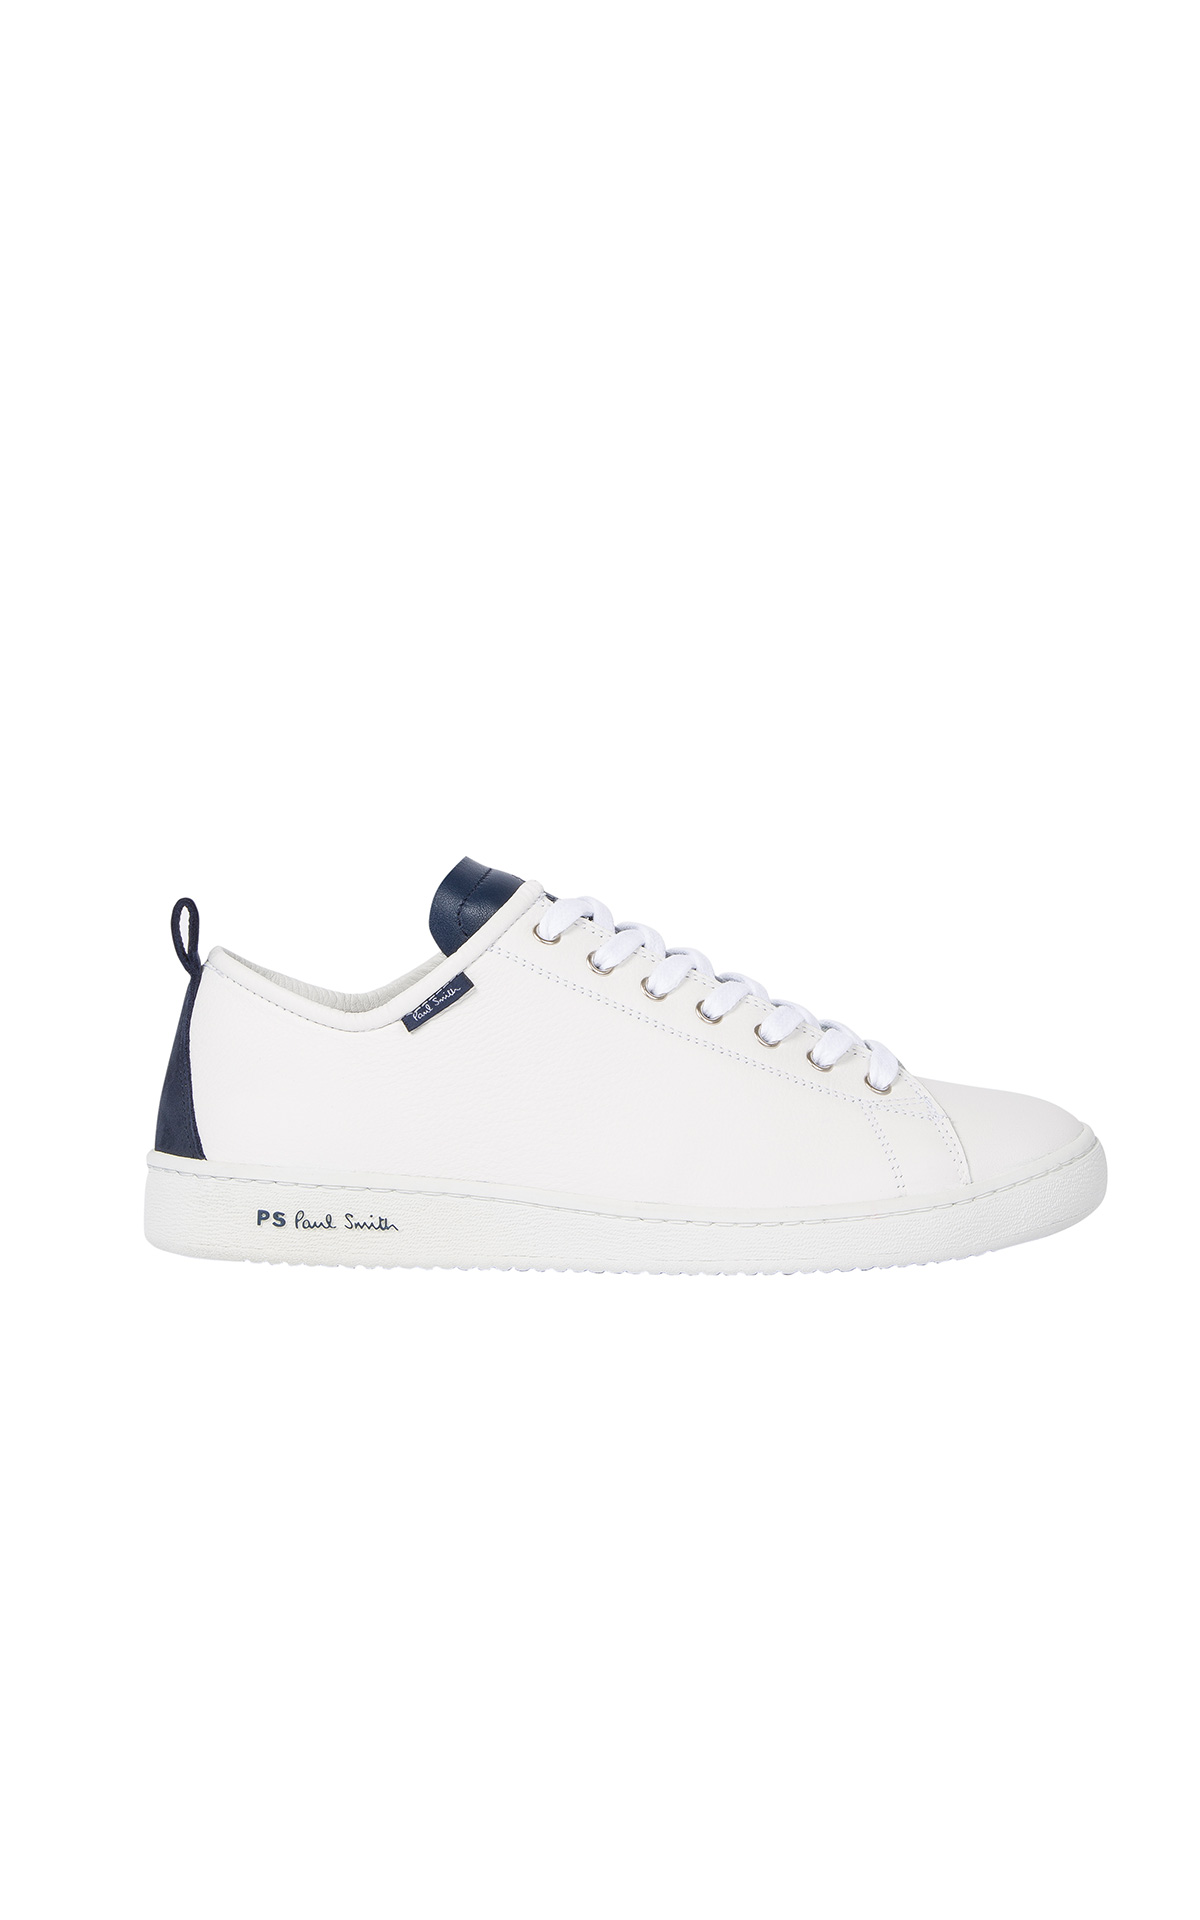 La Vallée Village Paul Smith Miyata sneakers